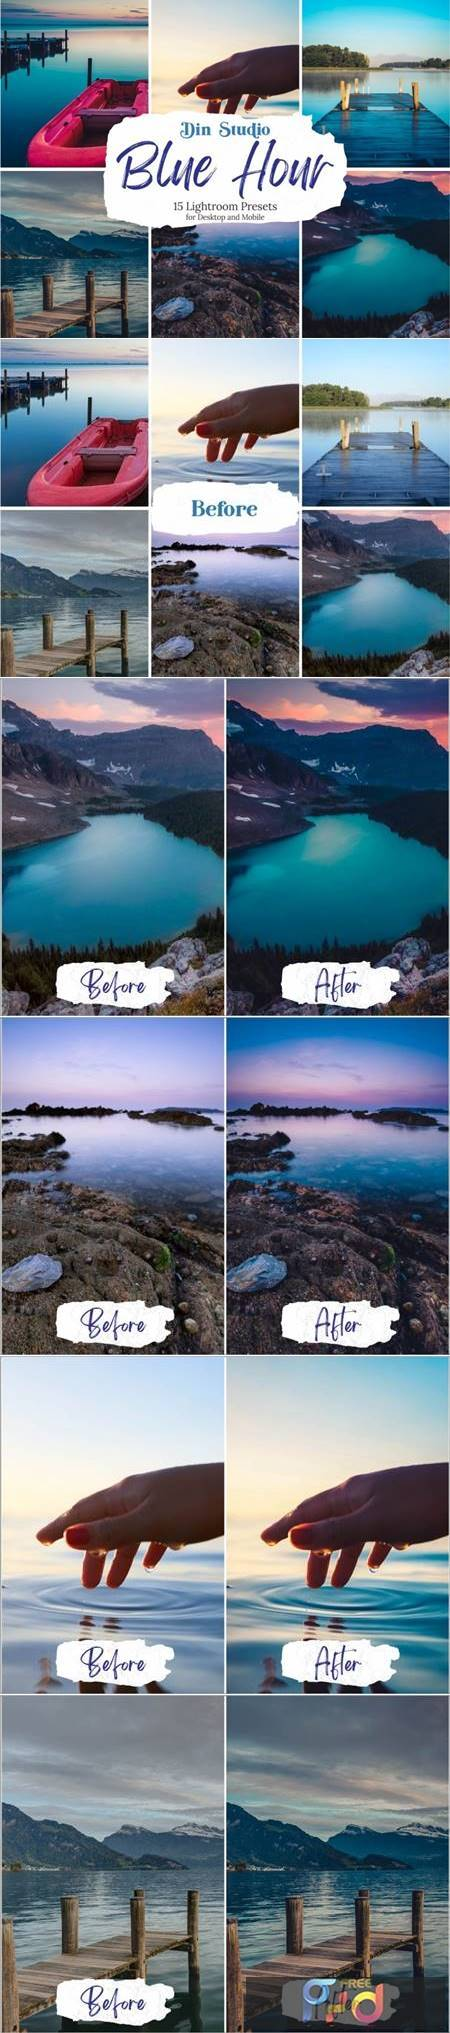 Blue Hour Lightroom Presets 5555559 1